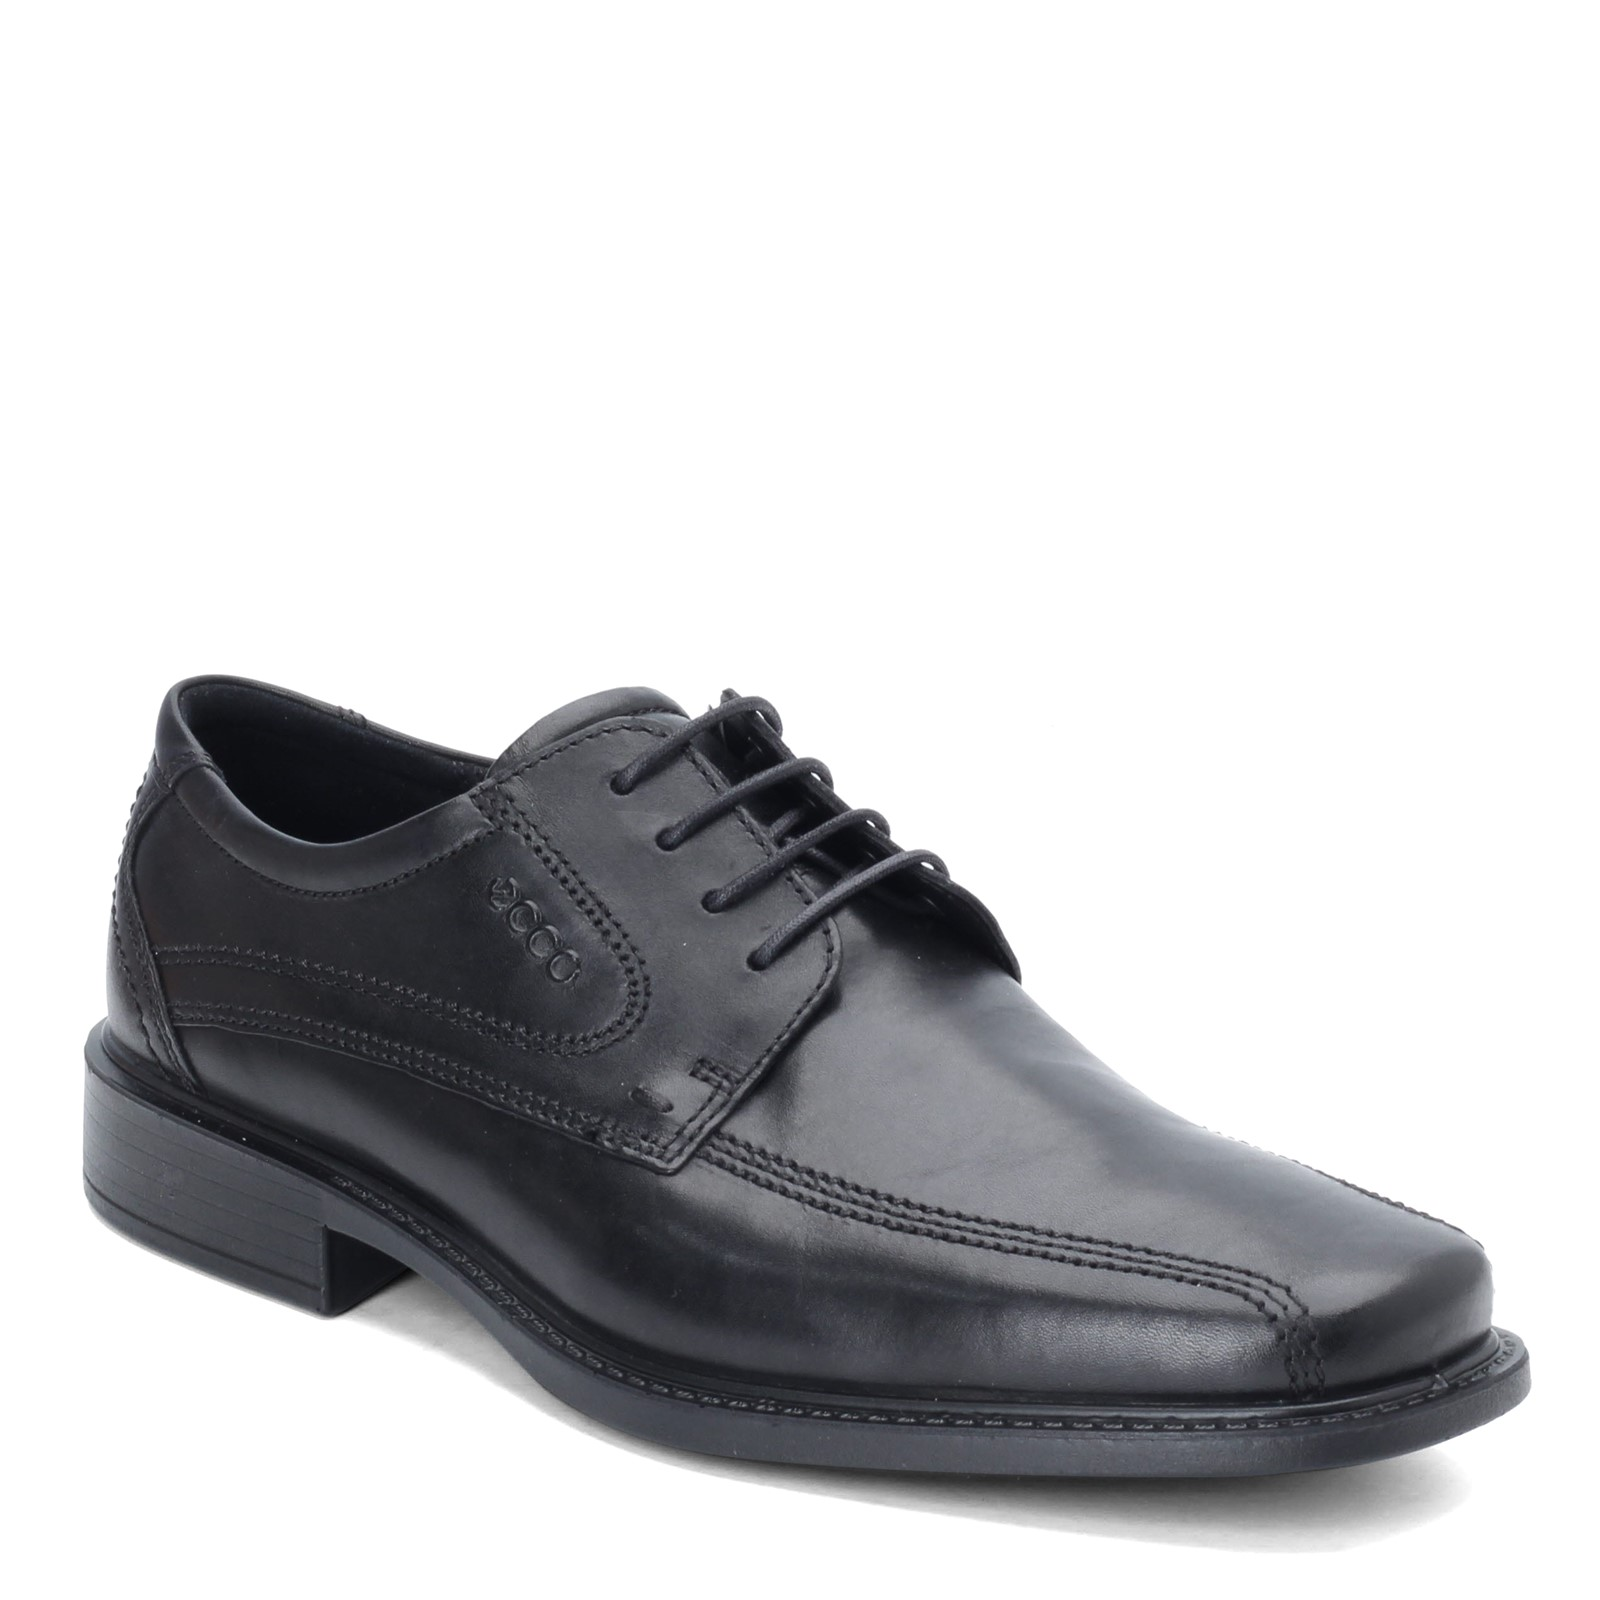 Men's Ecco, New Jersey Dress Shoes